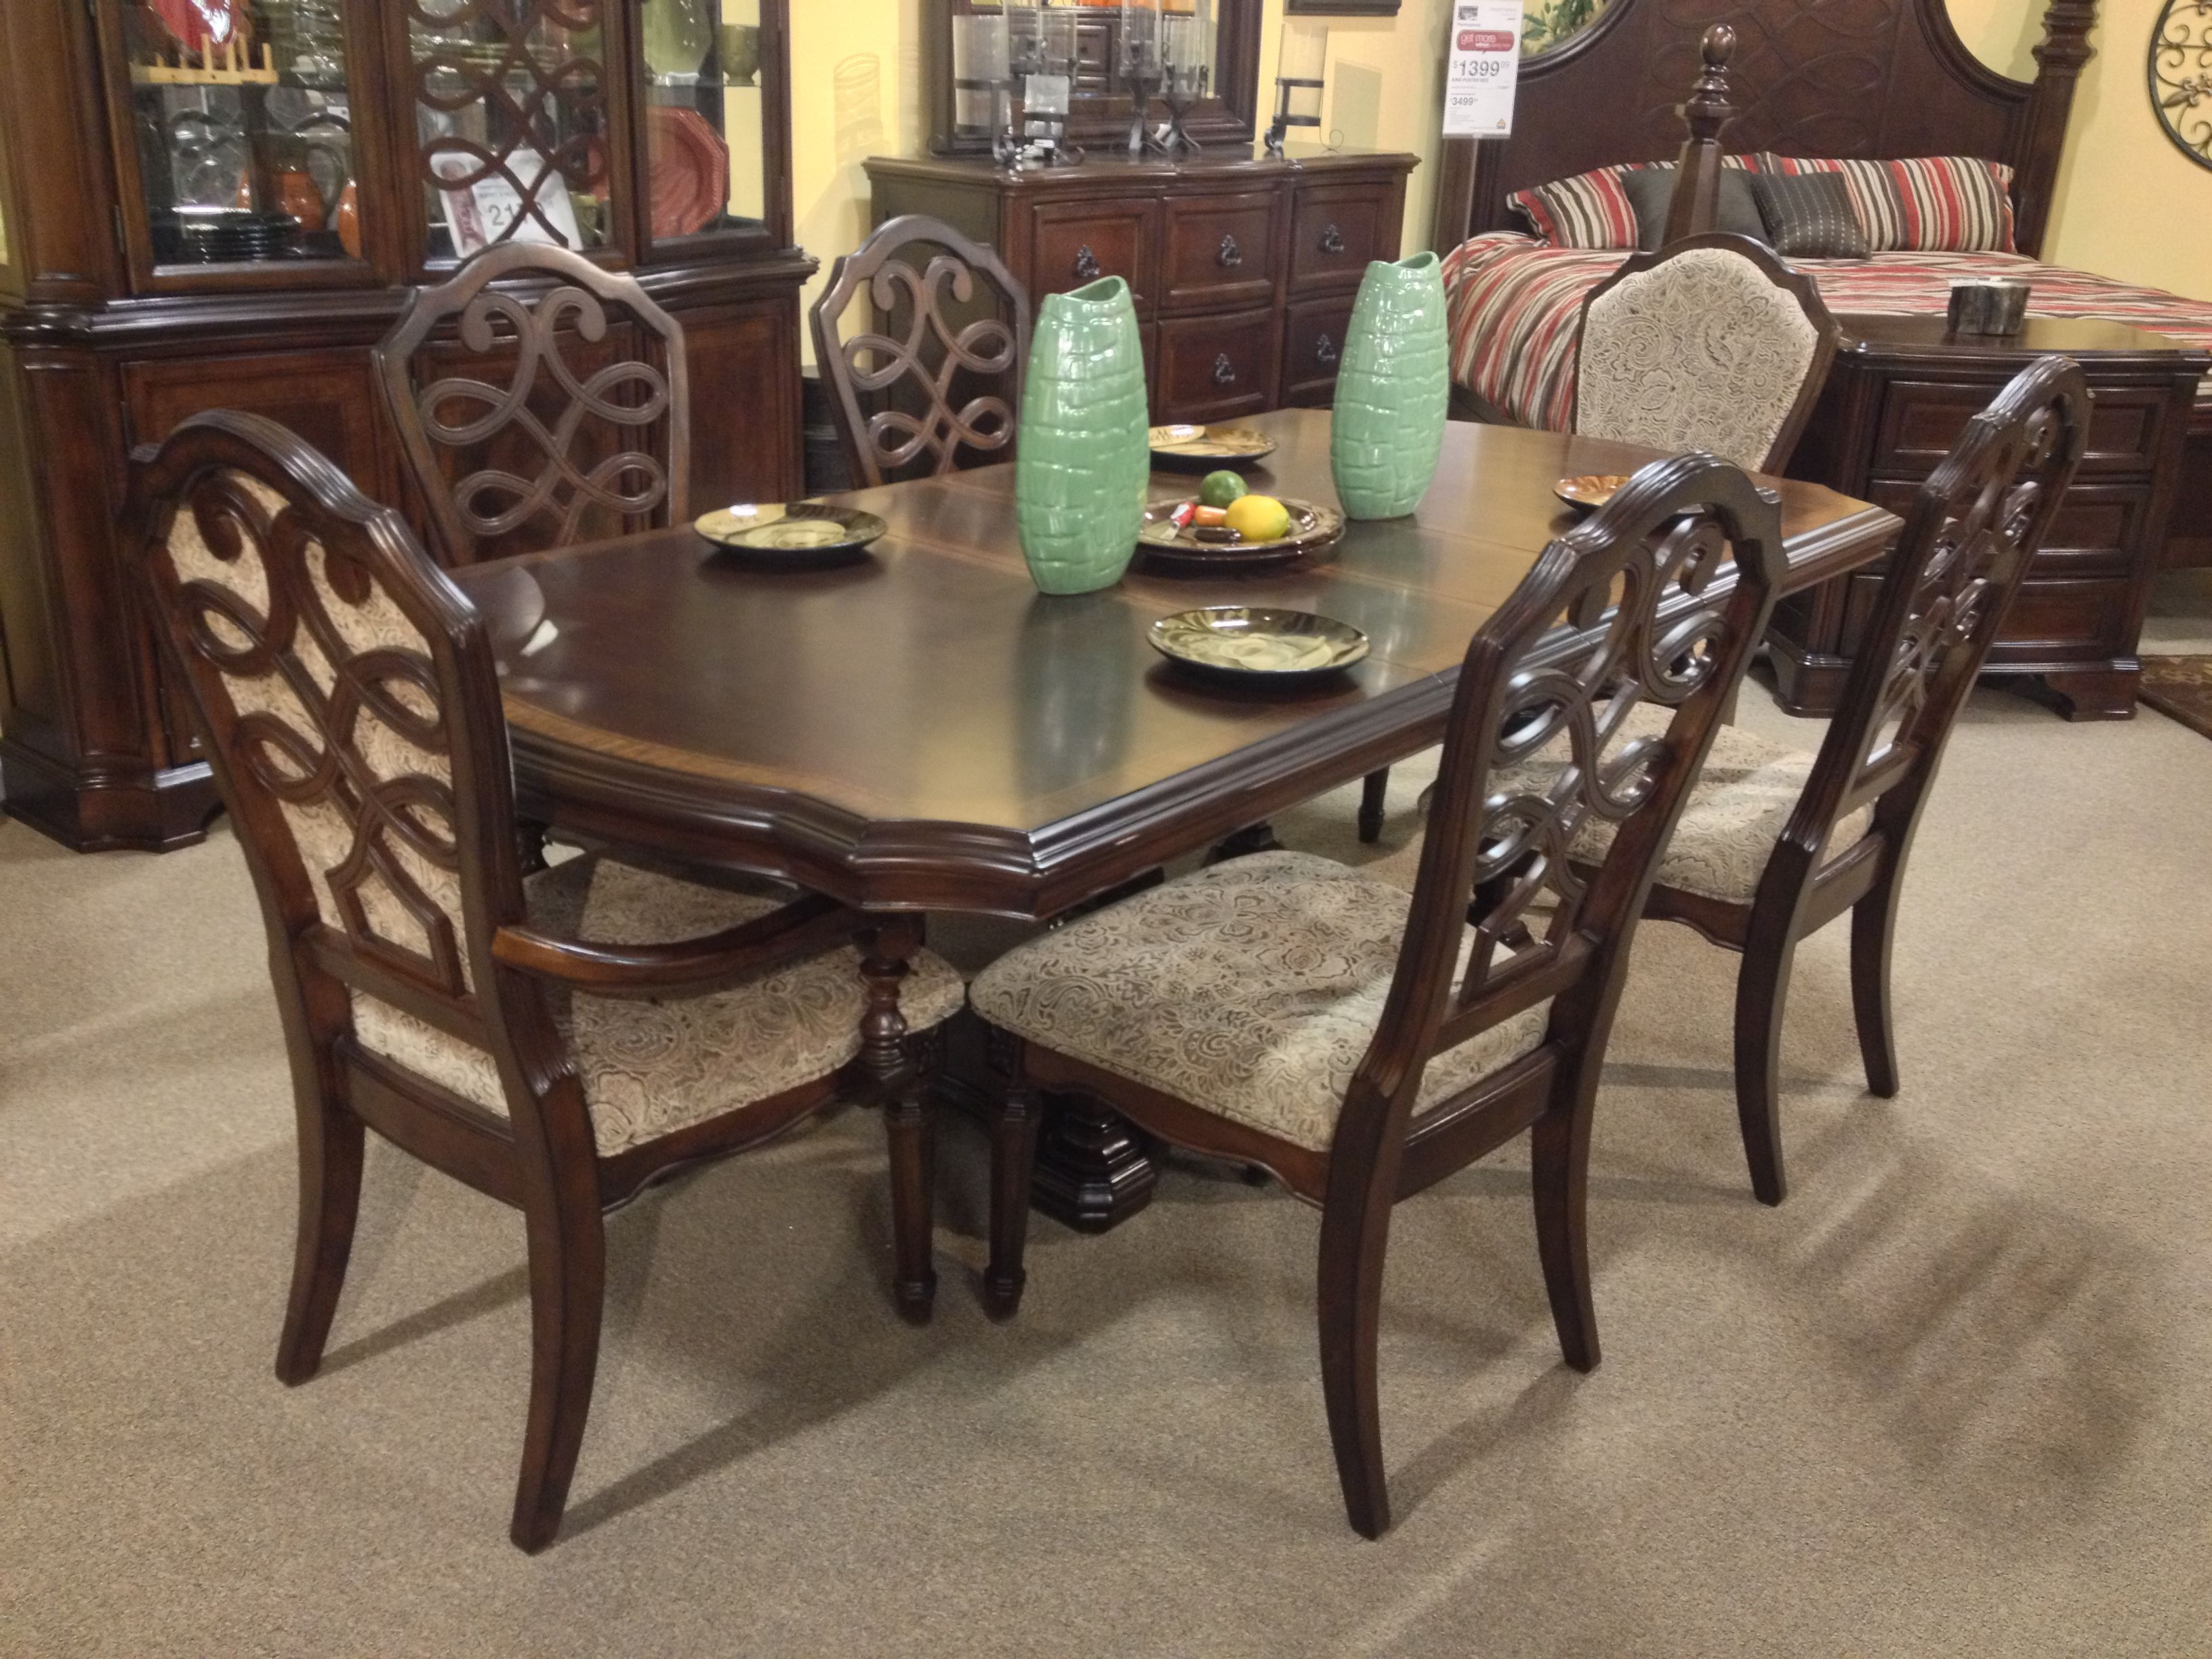 Flemingsburg 7 Piece Dining Room Set Ashley Furniture In